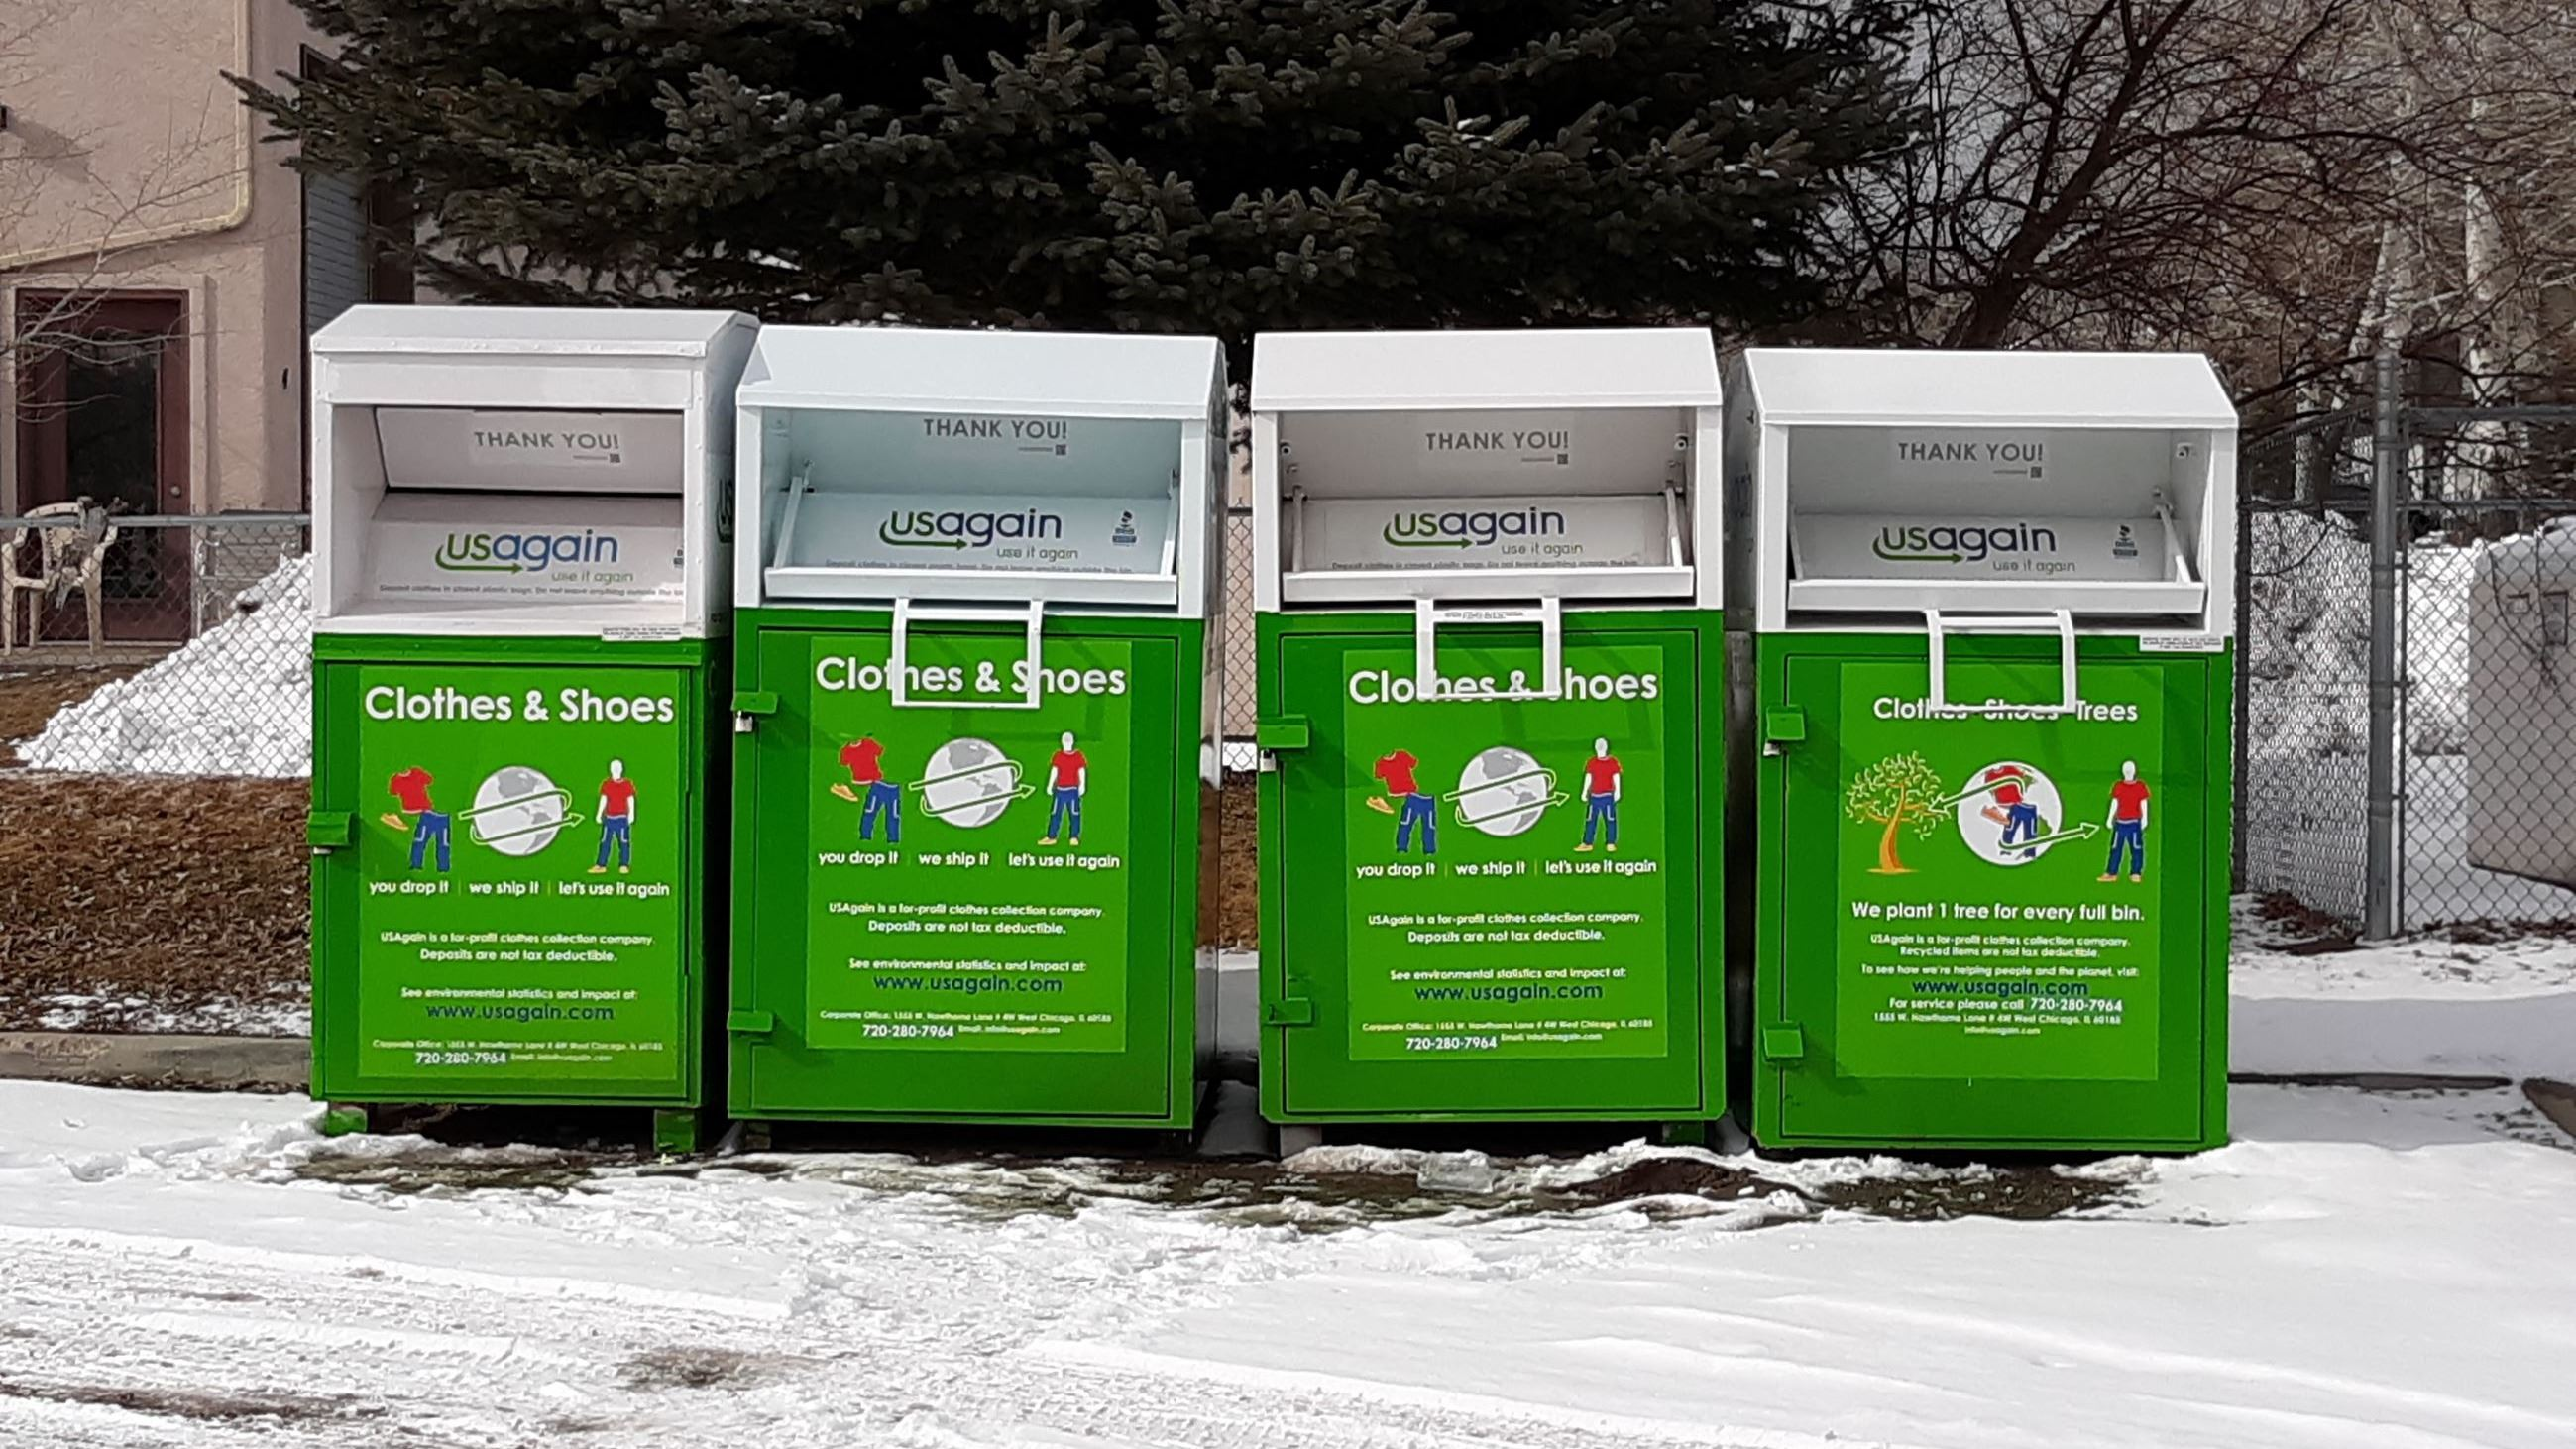 Recycle Drop Off Site | Town of Eagle, CO - Official Website